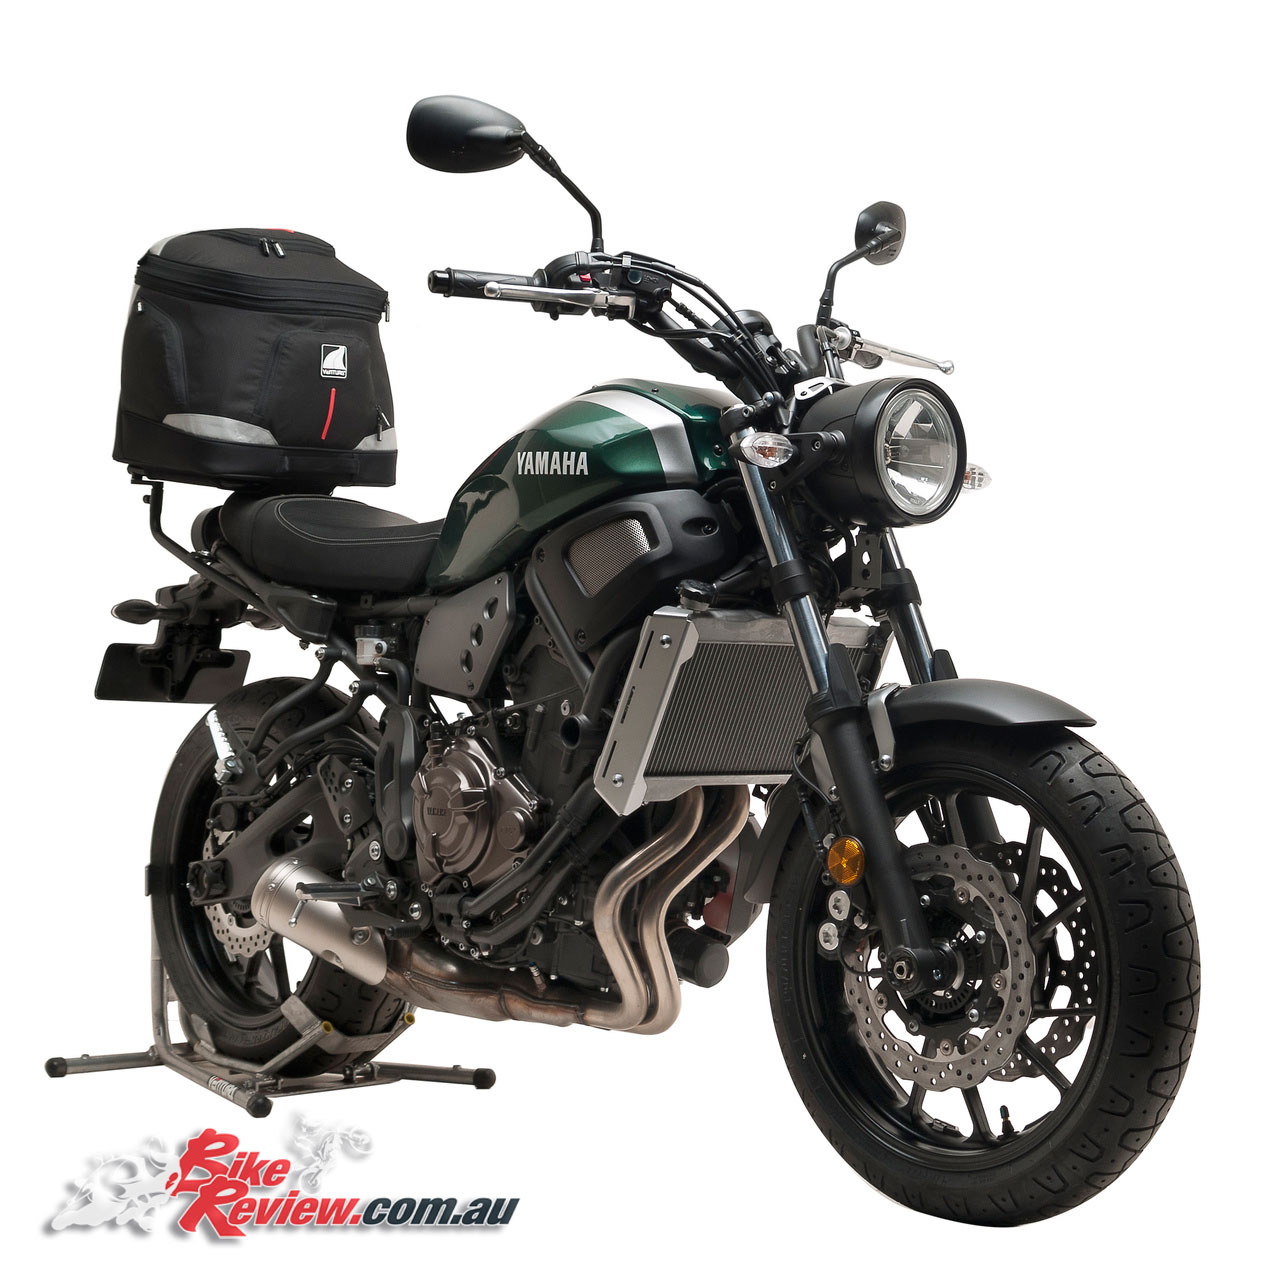 new product ventura luggage systems for yamaha xsr700. Black Bedroom Furniture Sets. Home Design Ideas